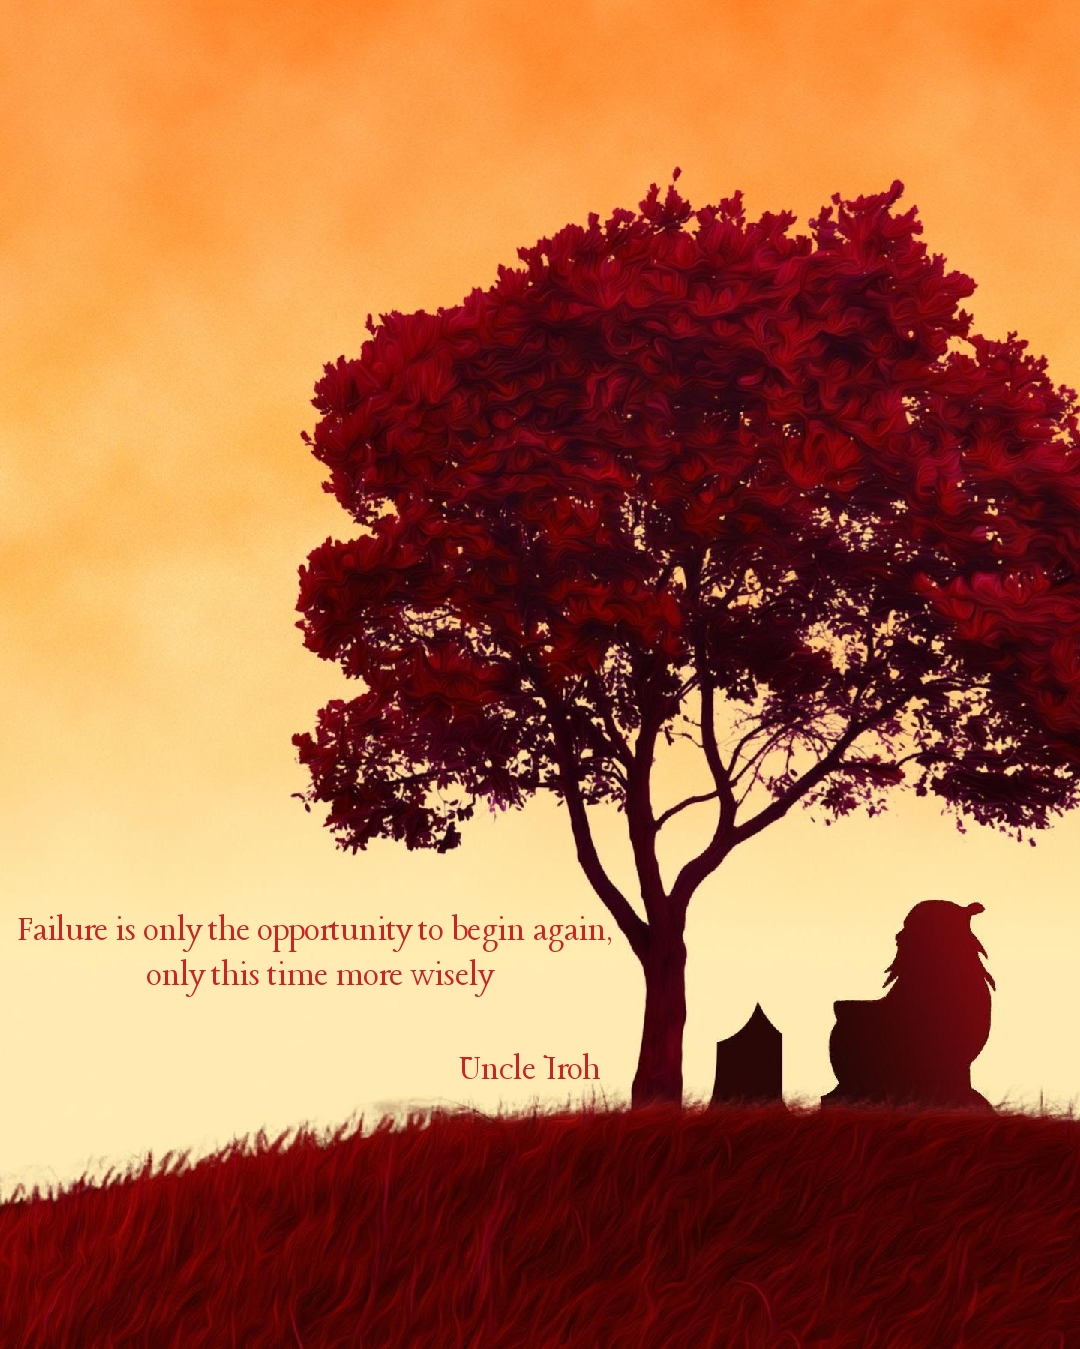 [Image] There is no failure in trying